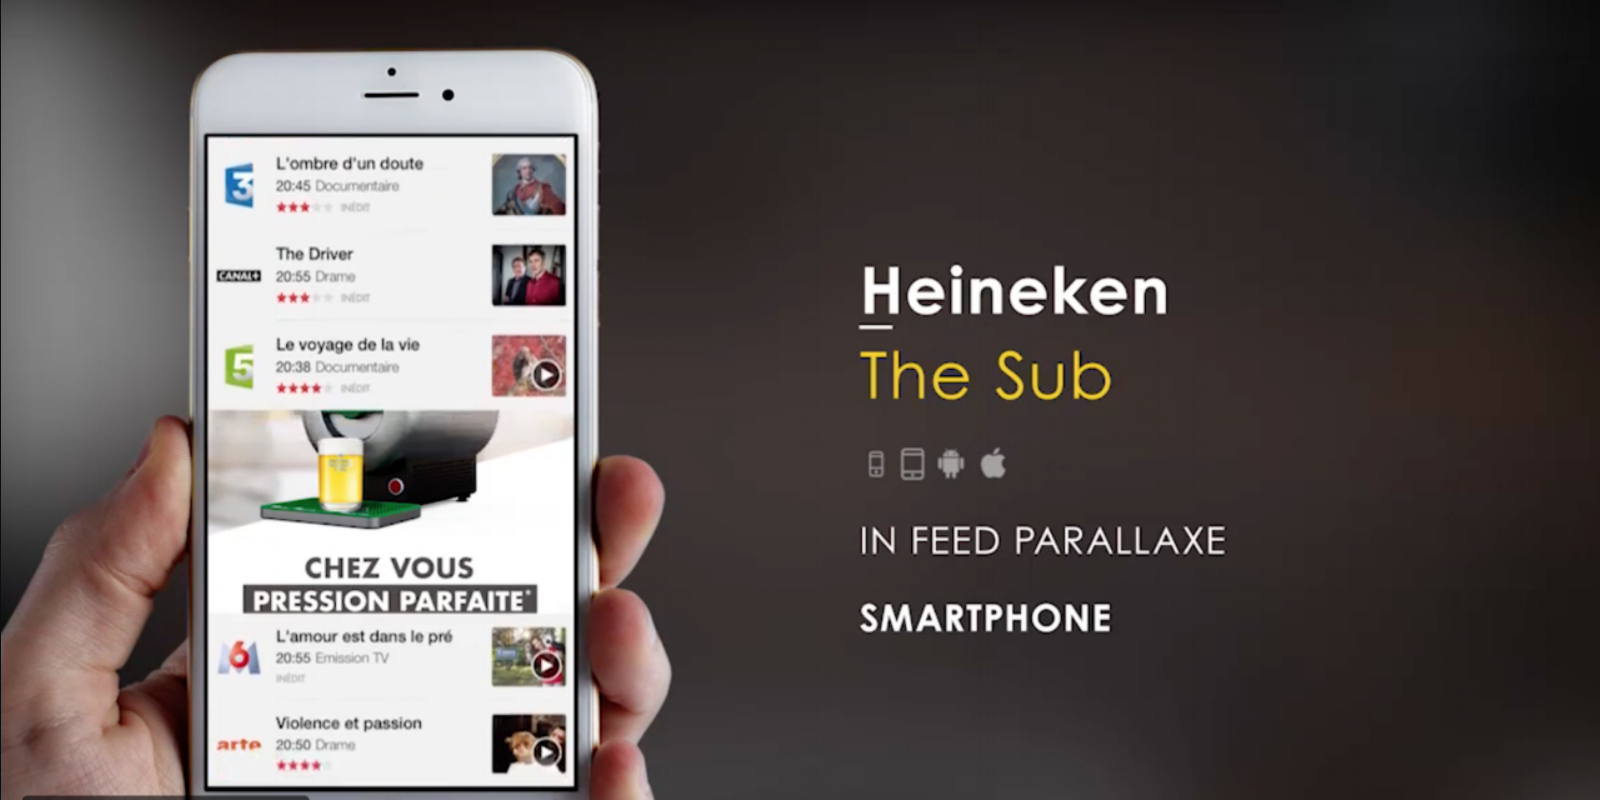 in-feed parallax